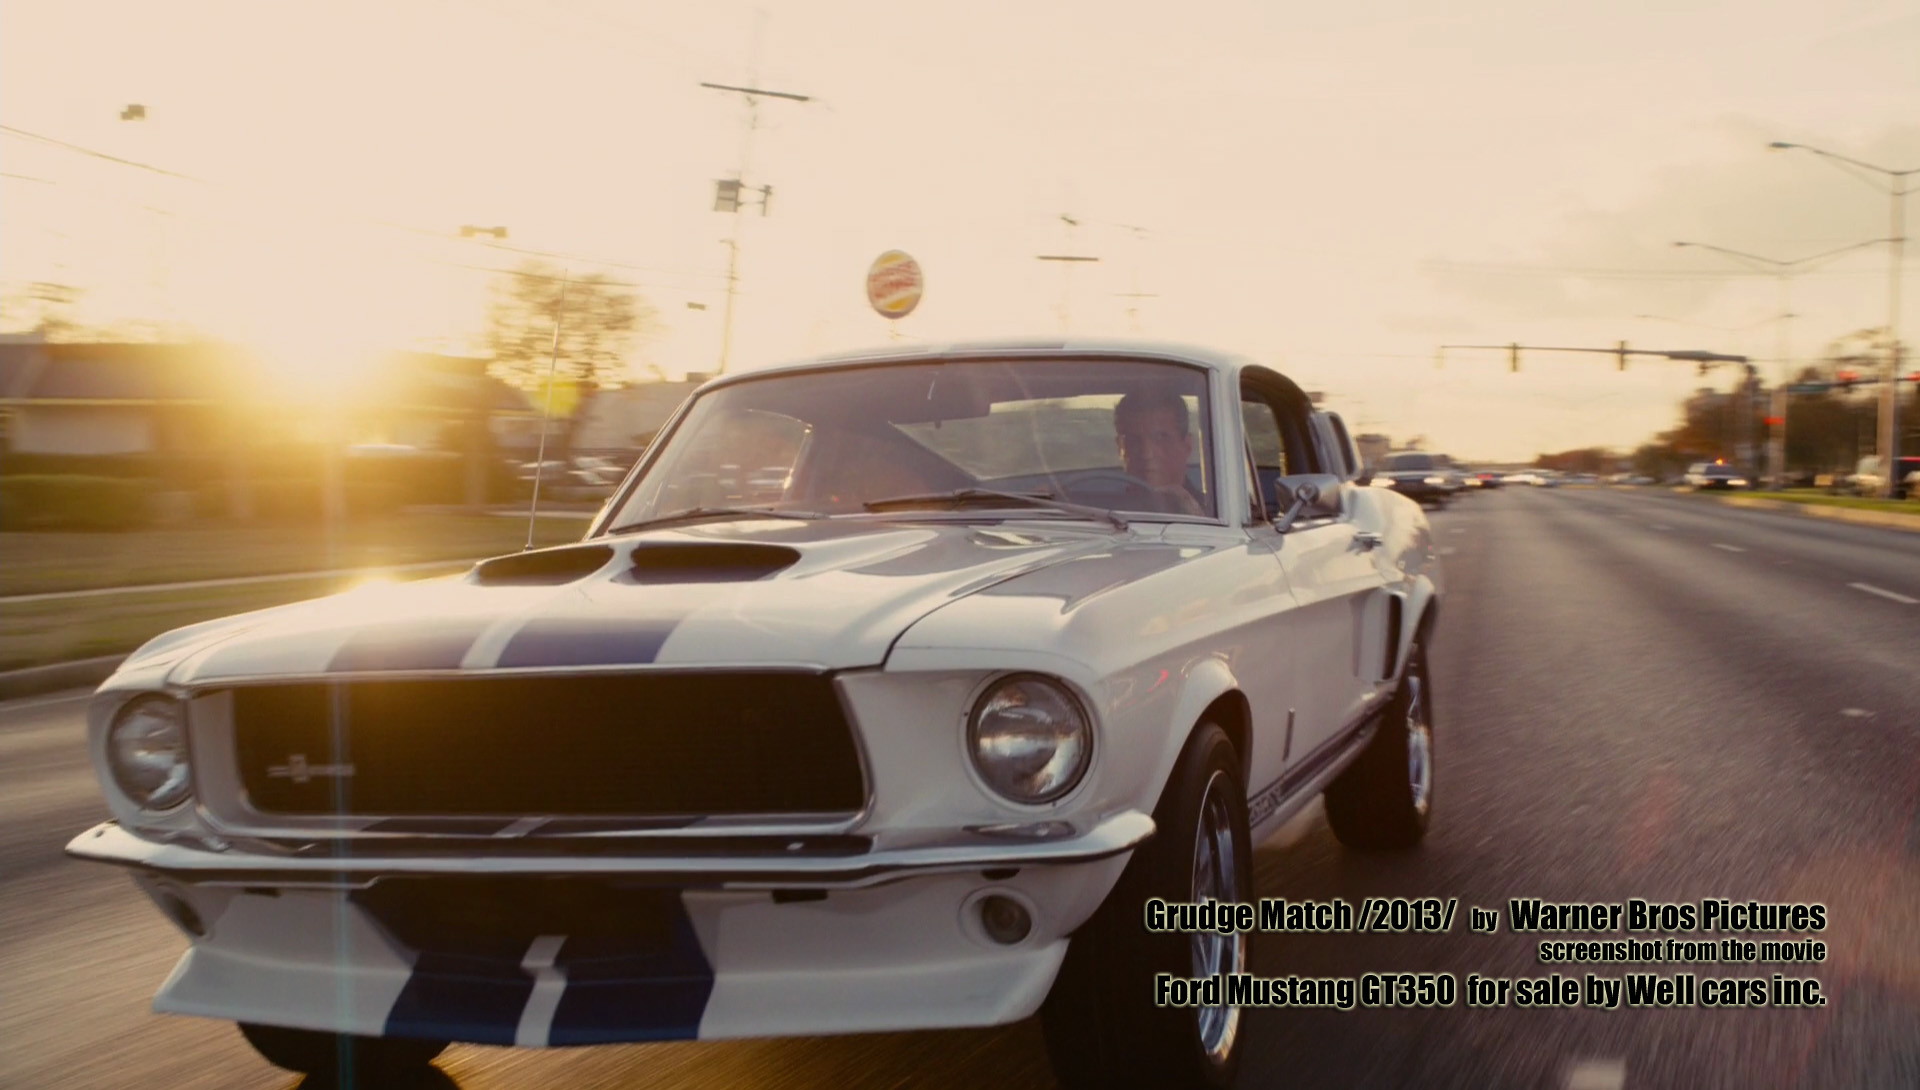 Ford Mustang GT350  for sale on www.tsunami.sk